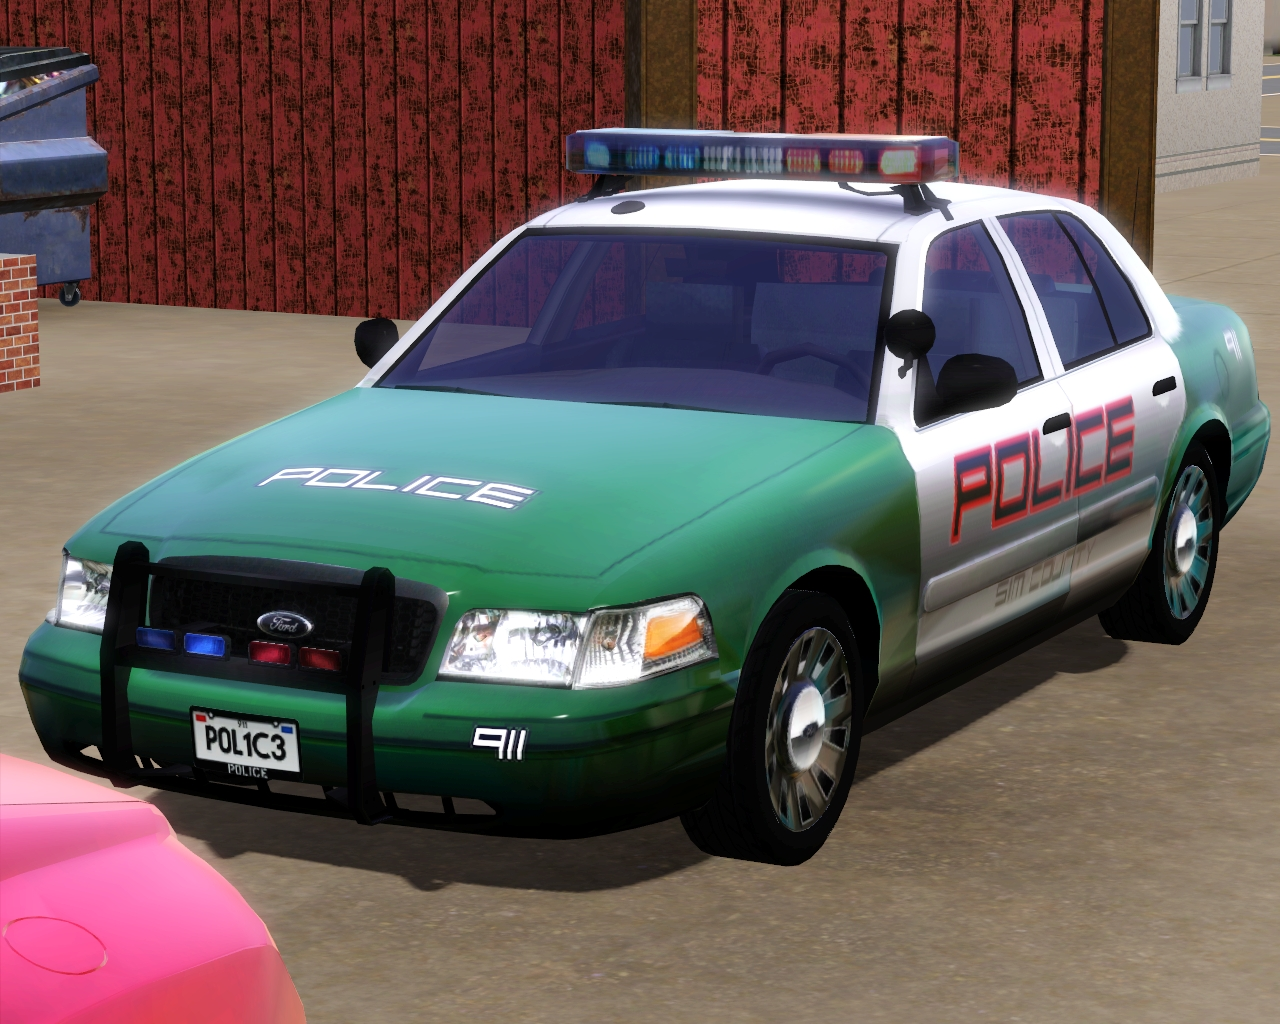 my sims 3 blog 2008 ford crown victoria police interceptor by fresh prince. Black Bedroom Furniture Sets. Home Design Ideas